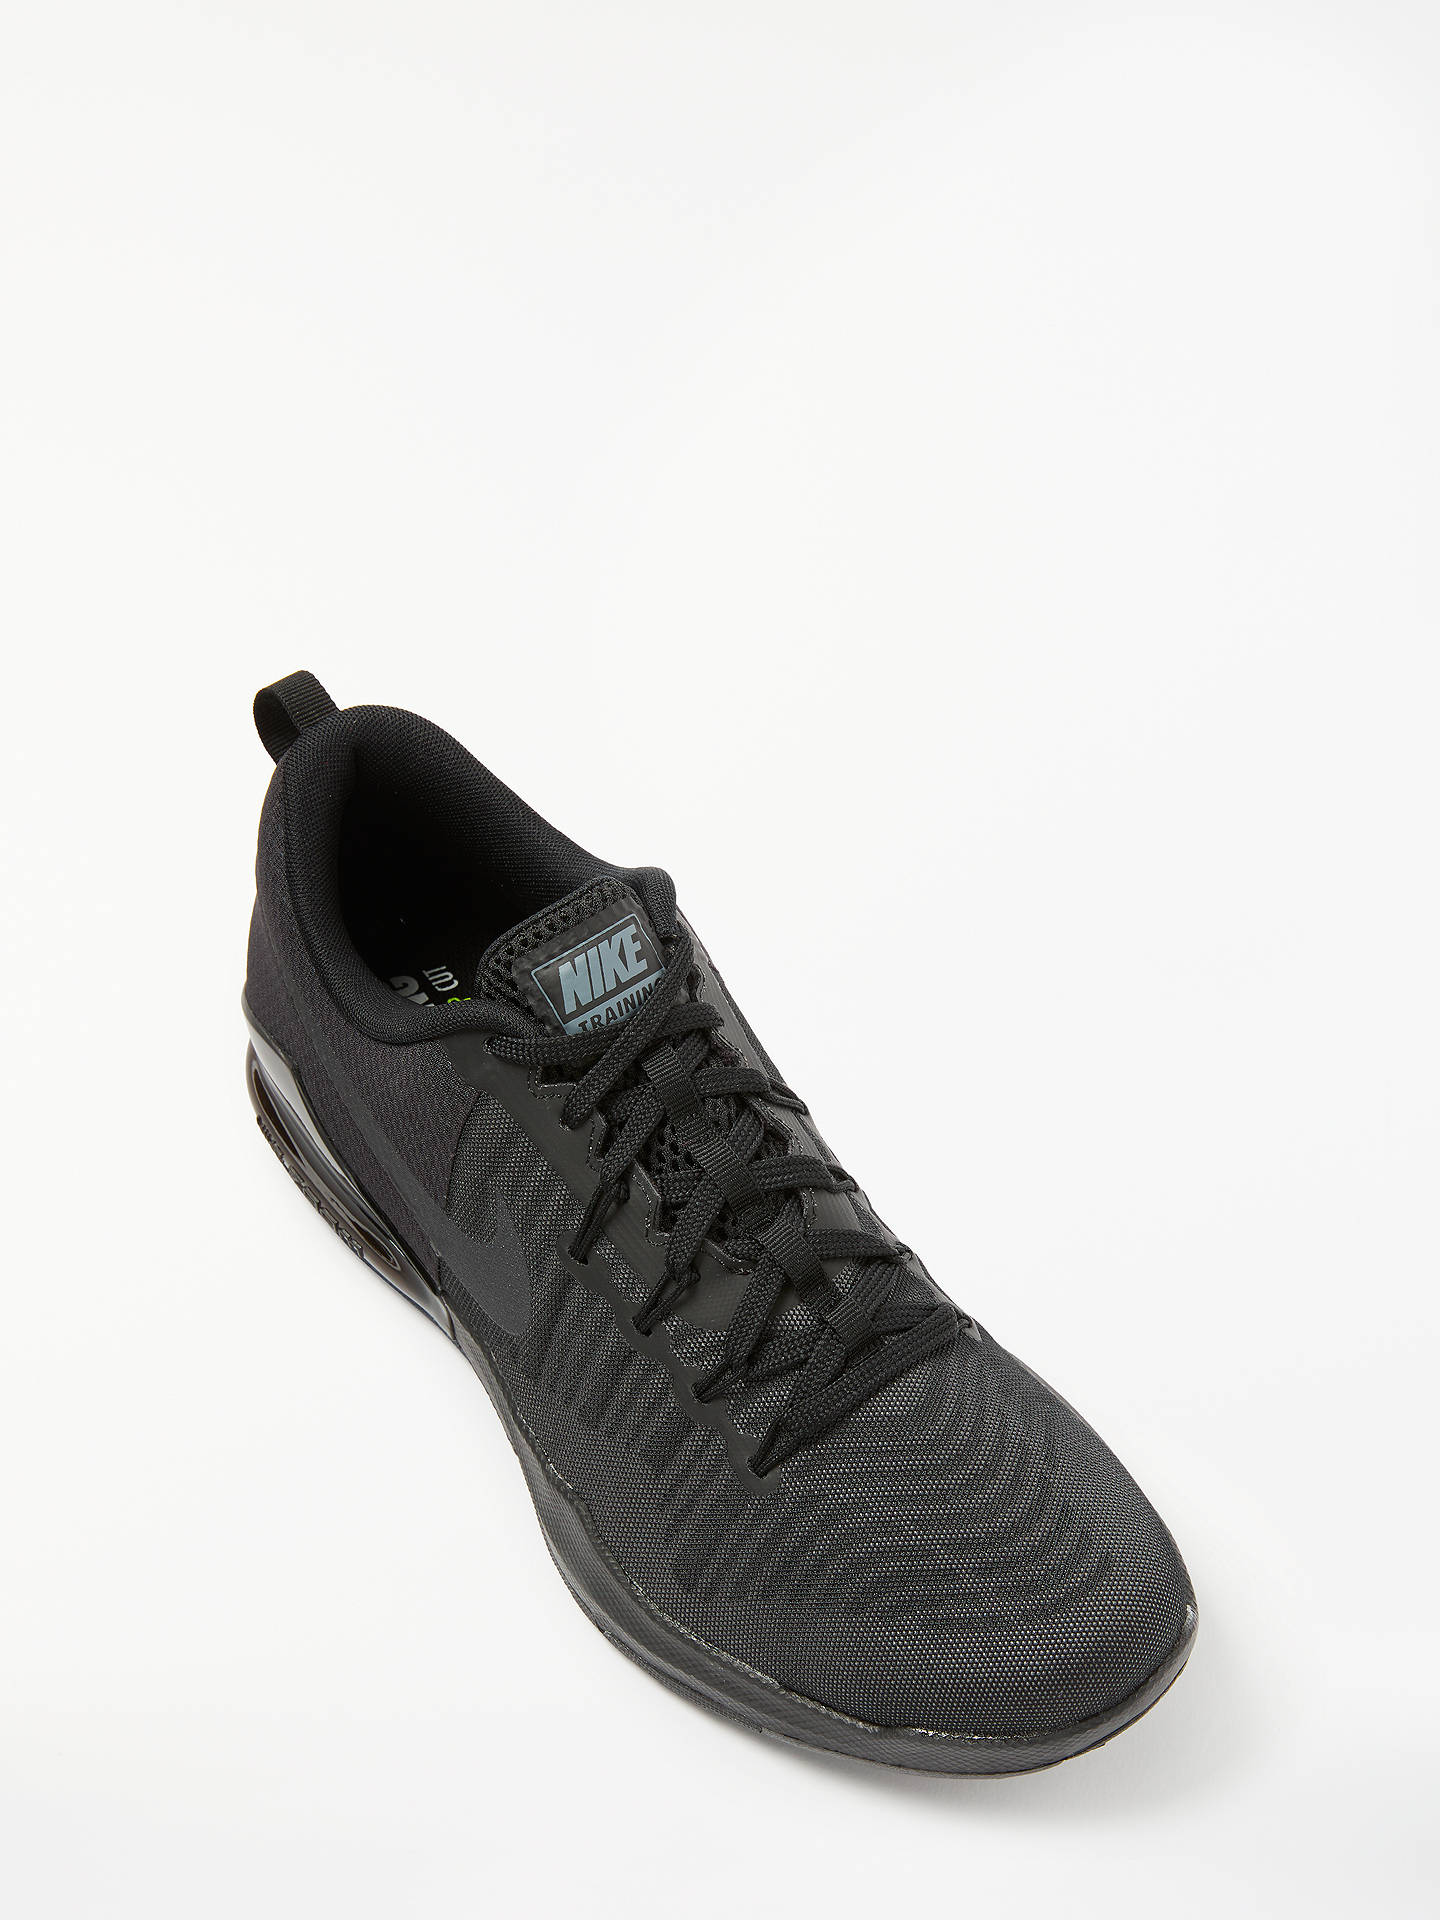 3a1079a81c067 ... Buy Nike Zoom Train Action Men s Training Shoes